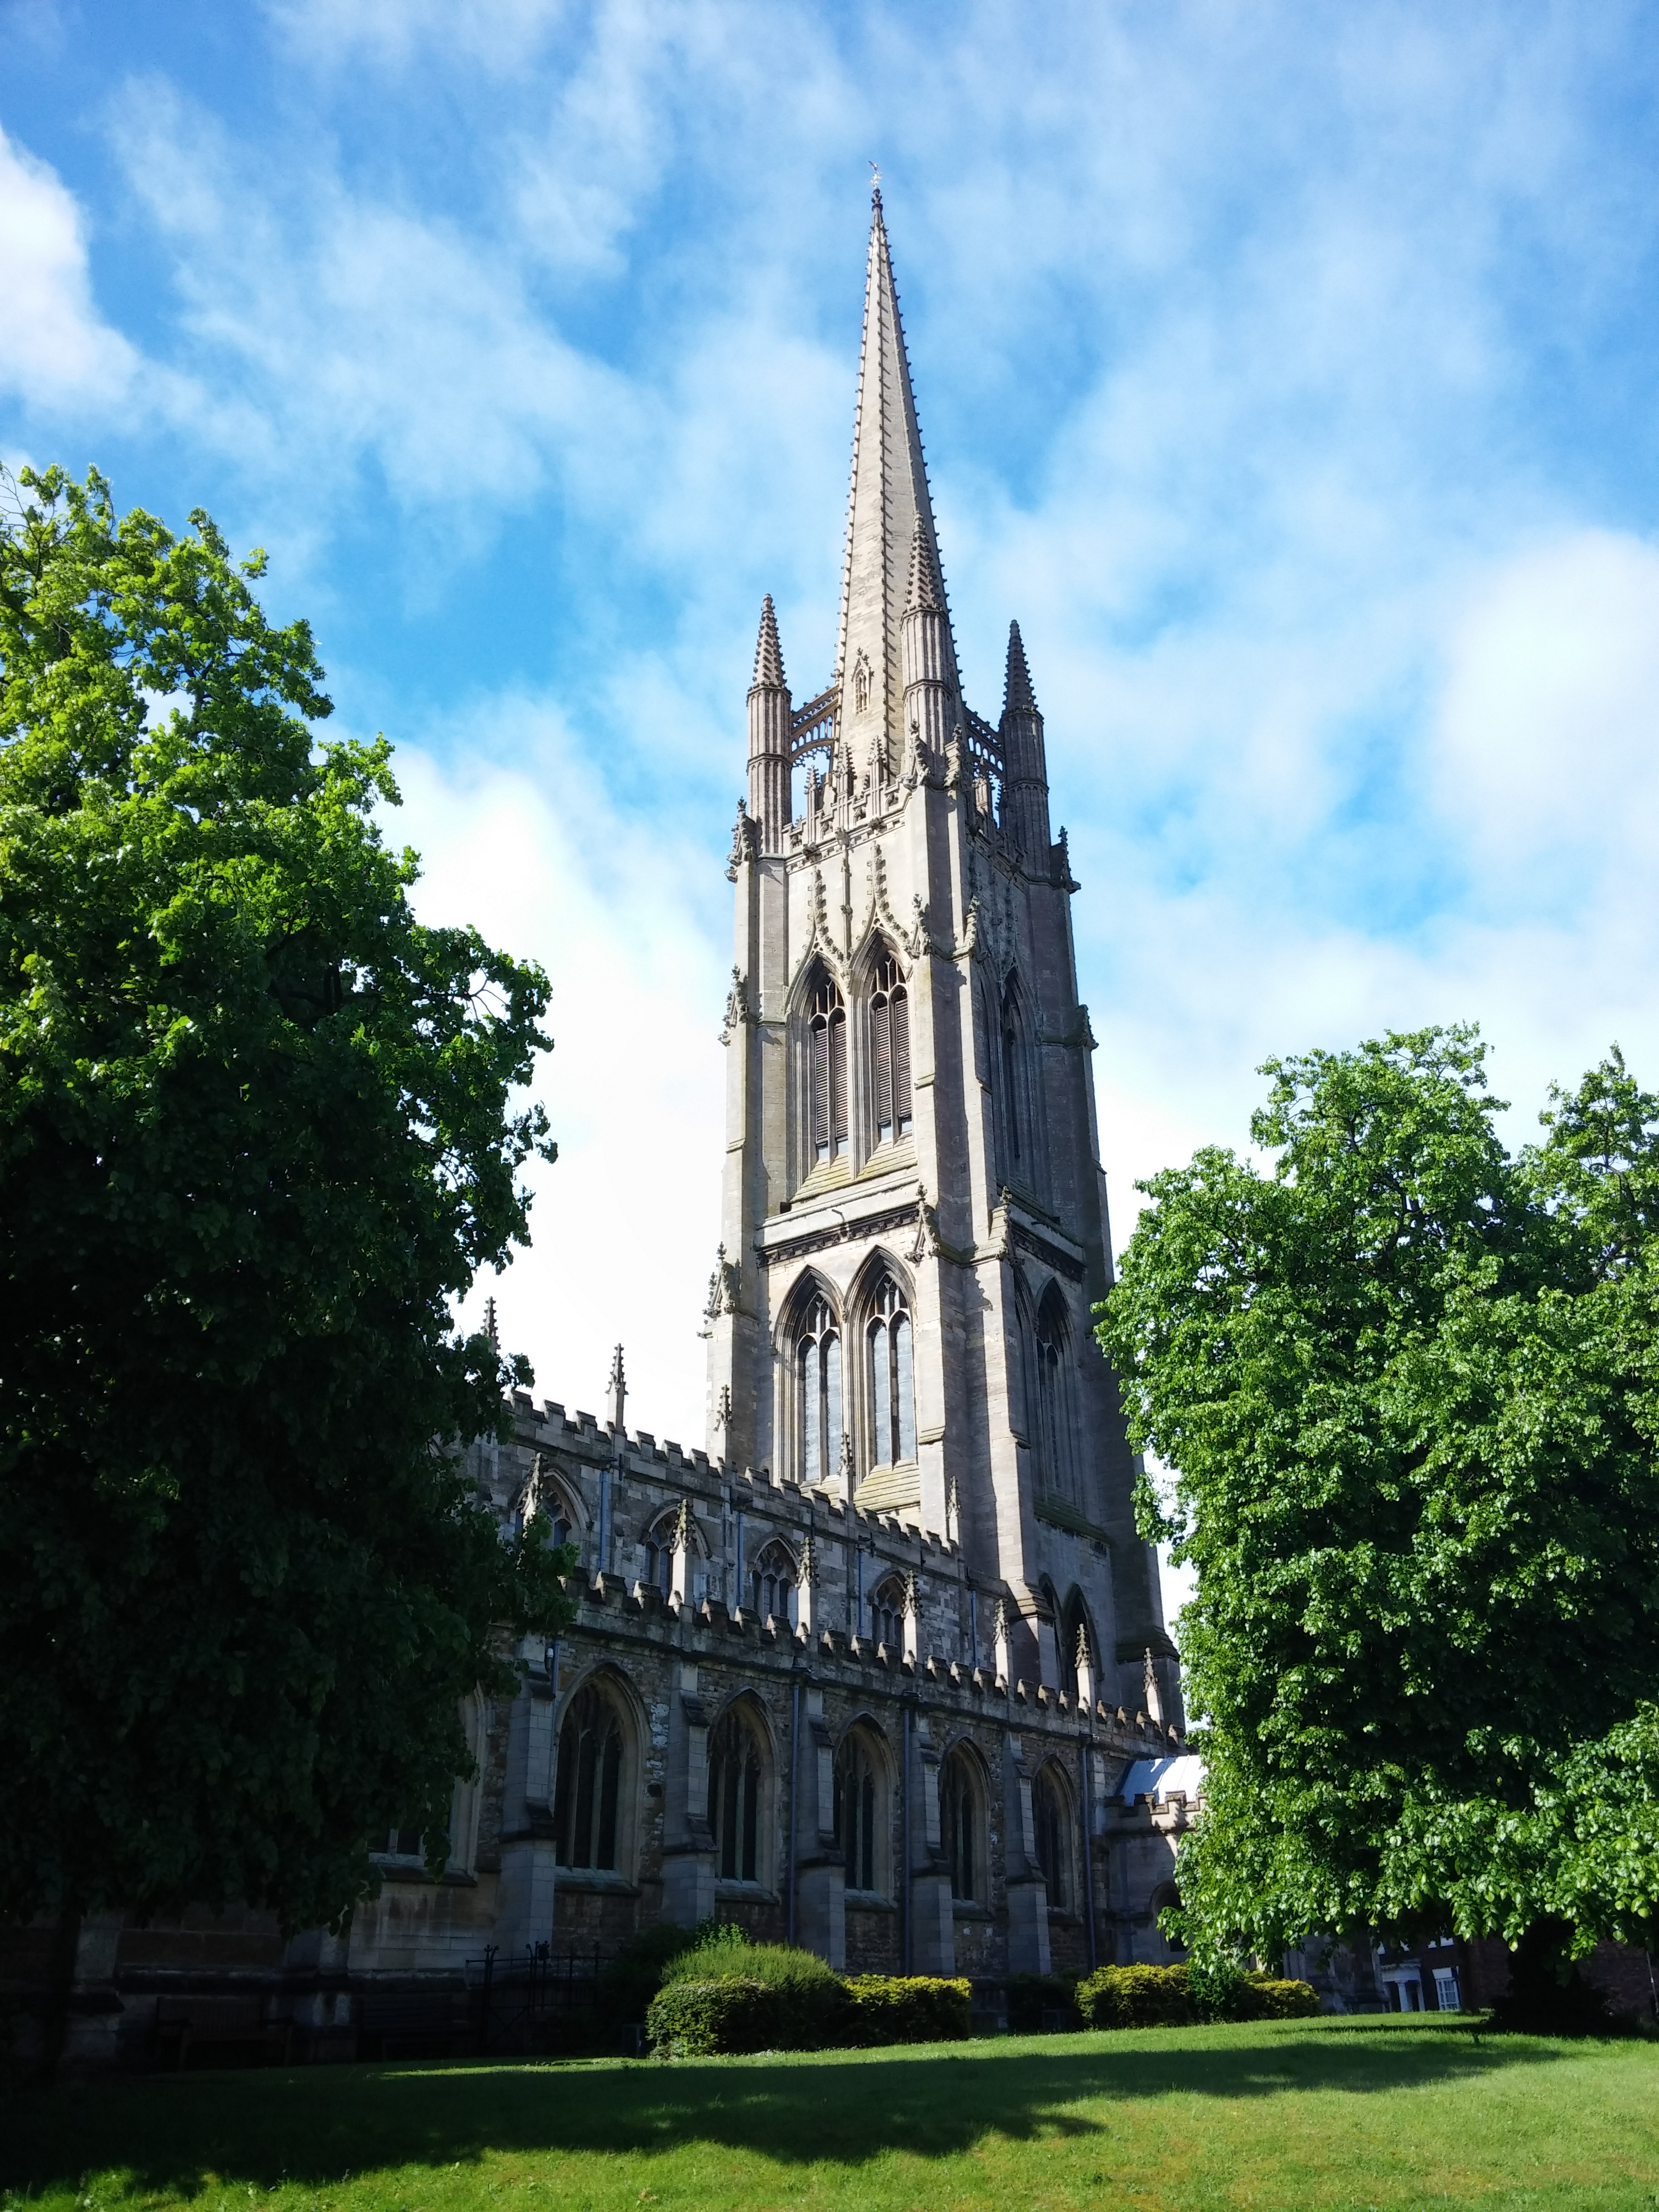 Highly Commended - Neil Hedge, St James Church, Louth, Lincolnshire